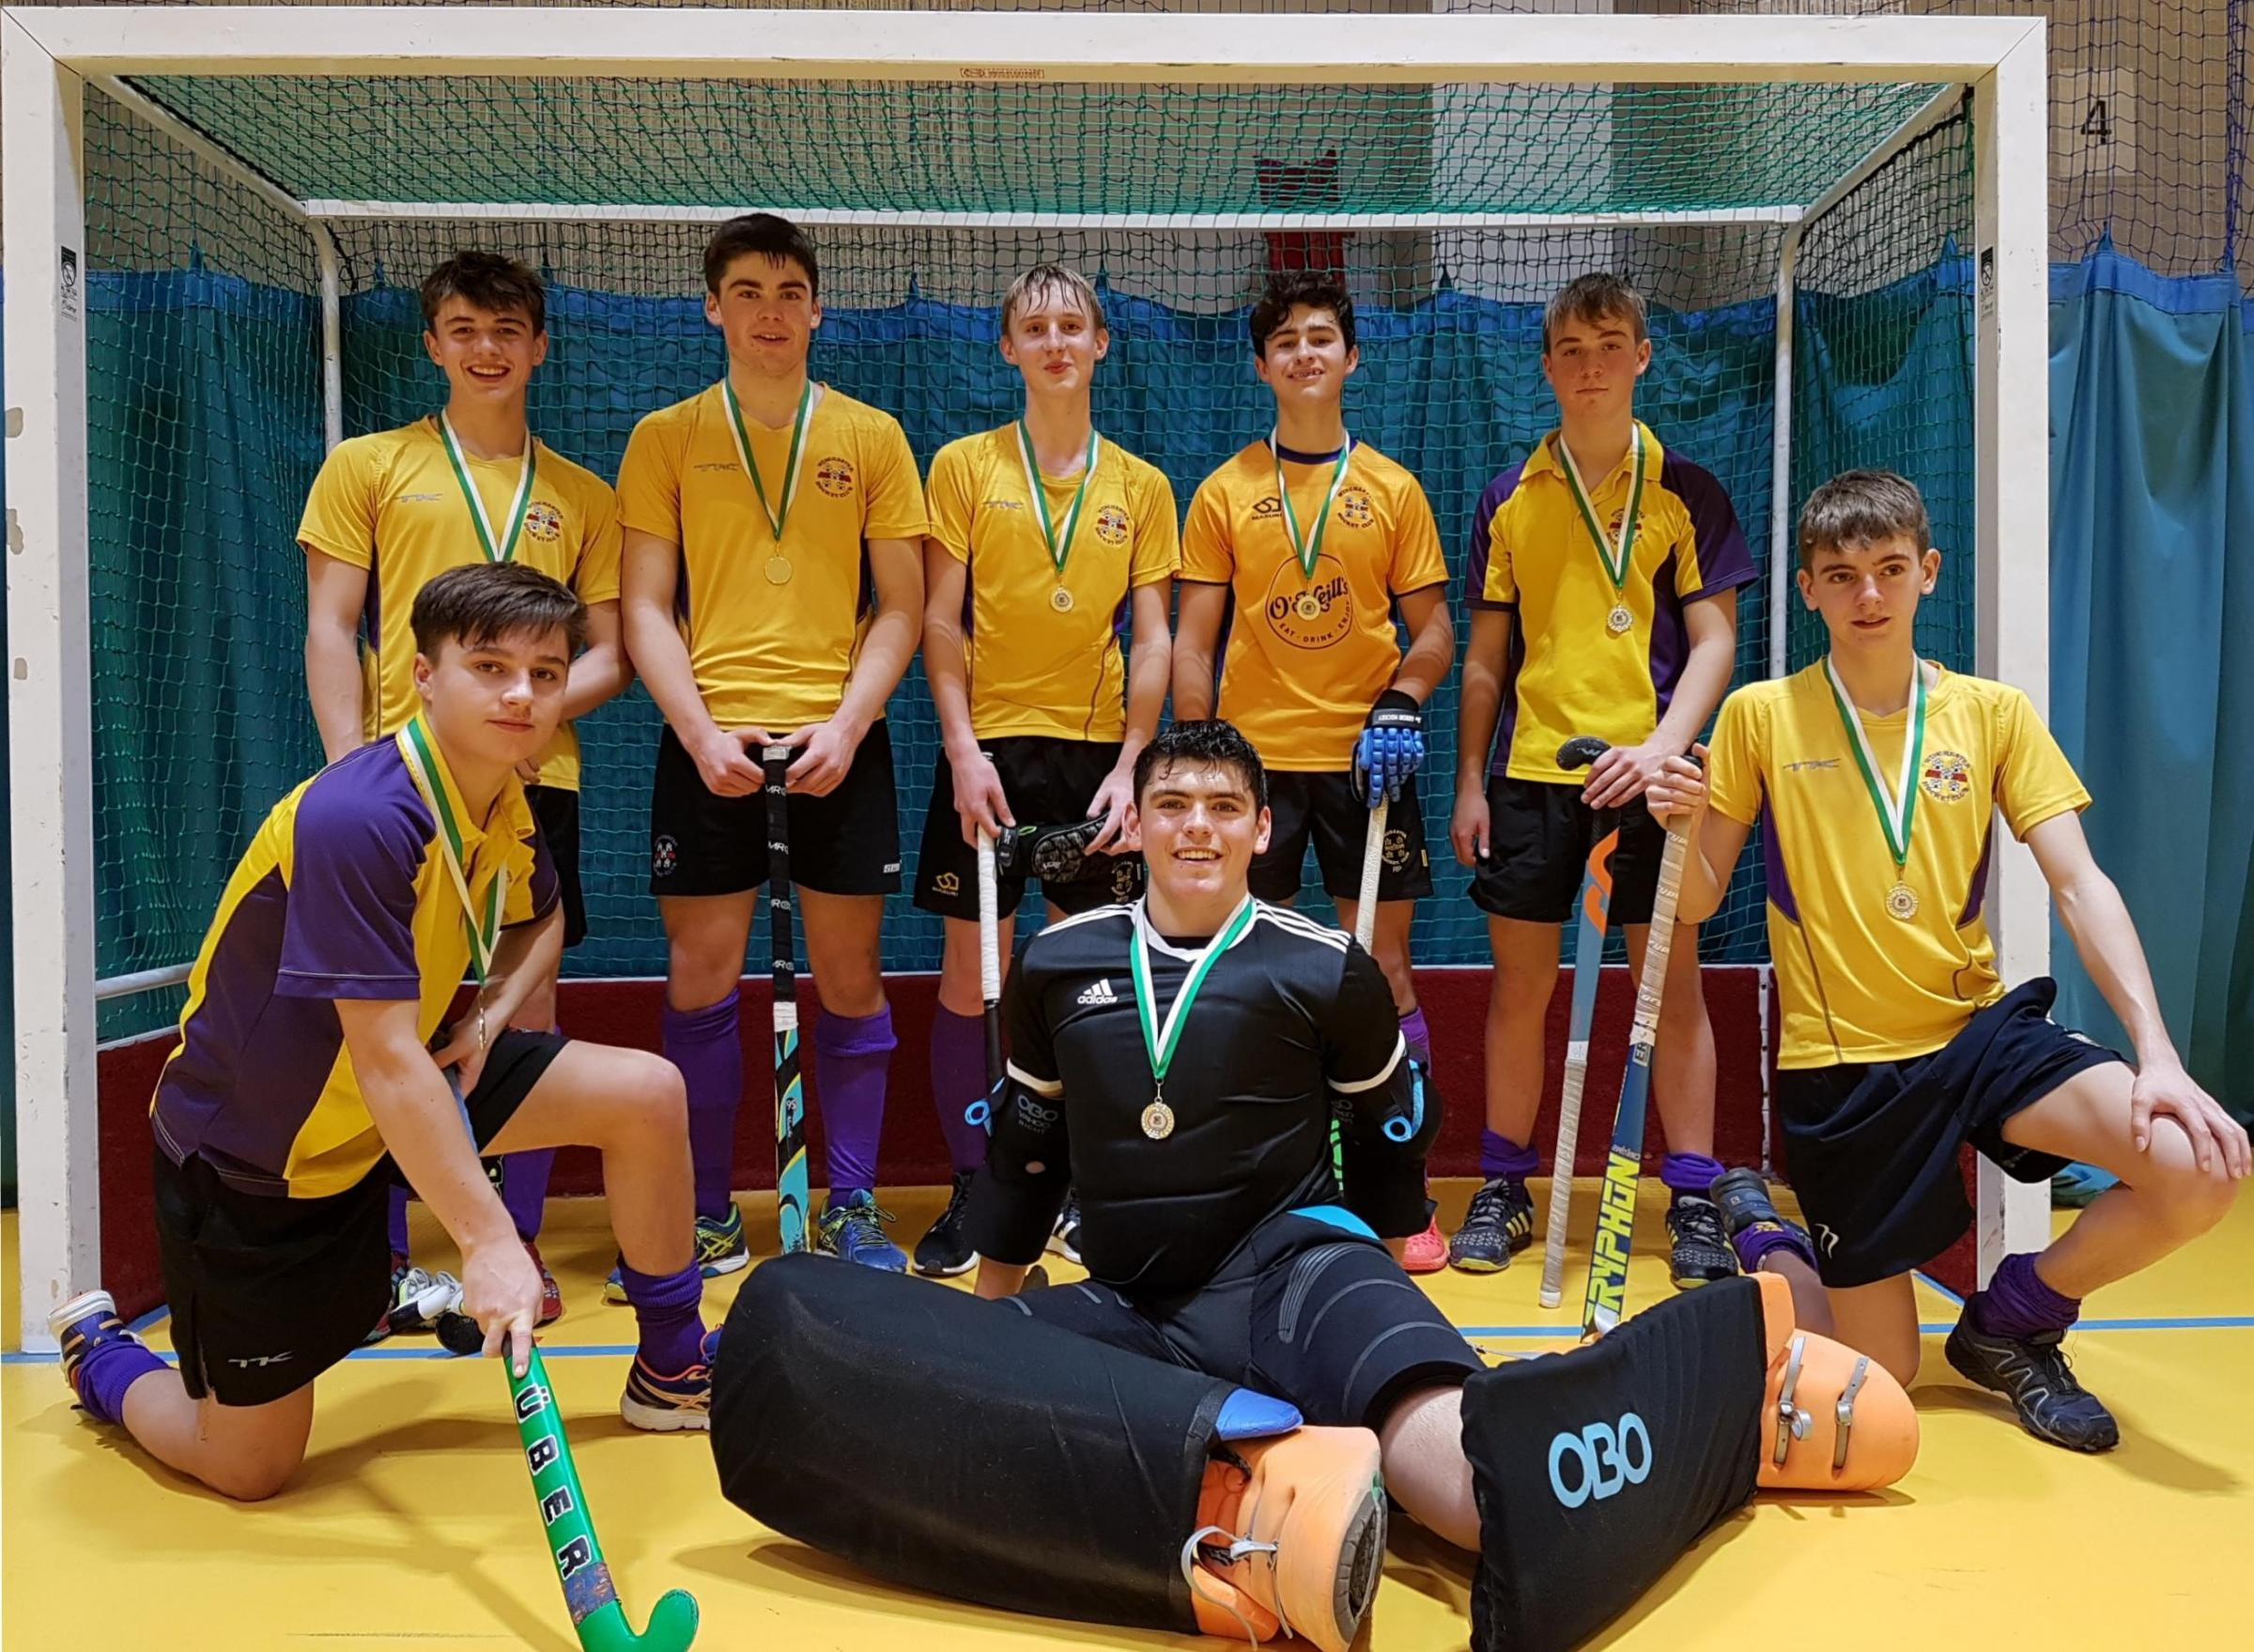 Winchester Hockey Club's victorious Under-16 boys' indoor team